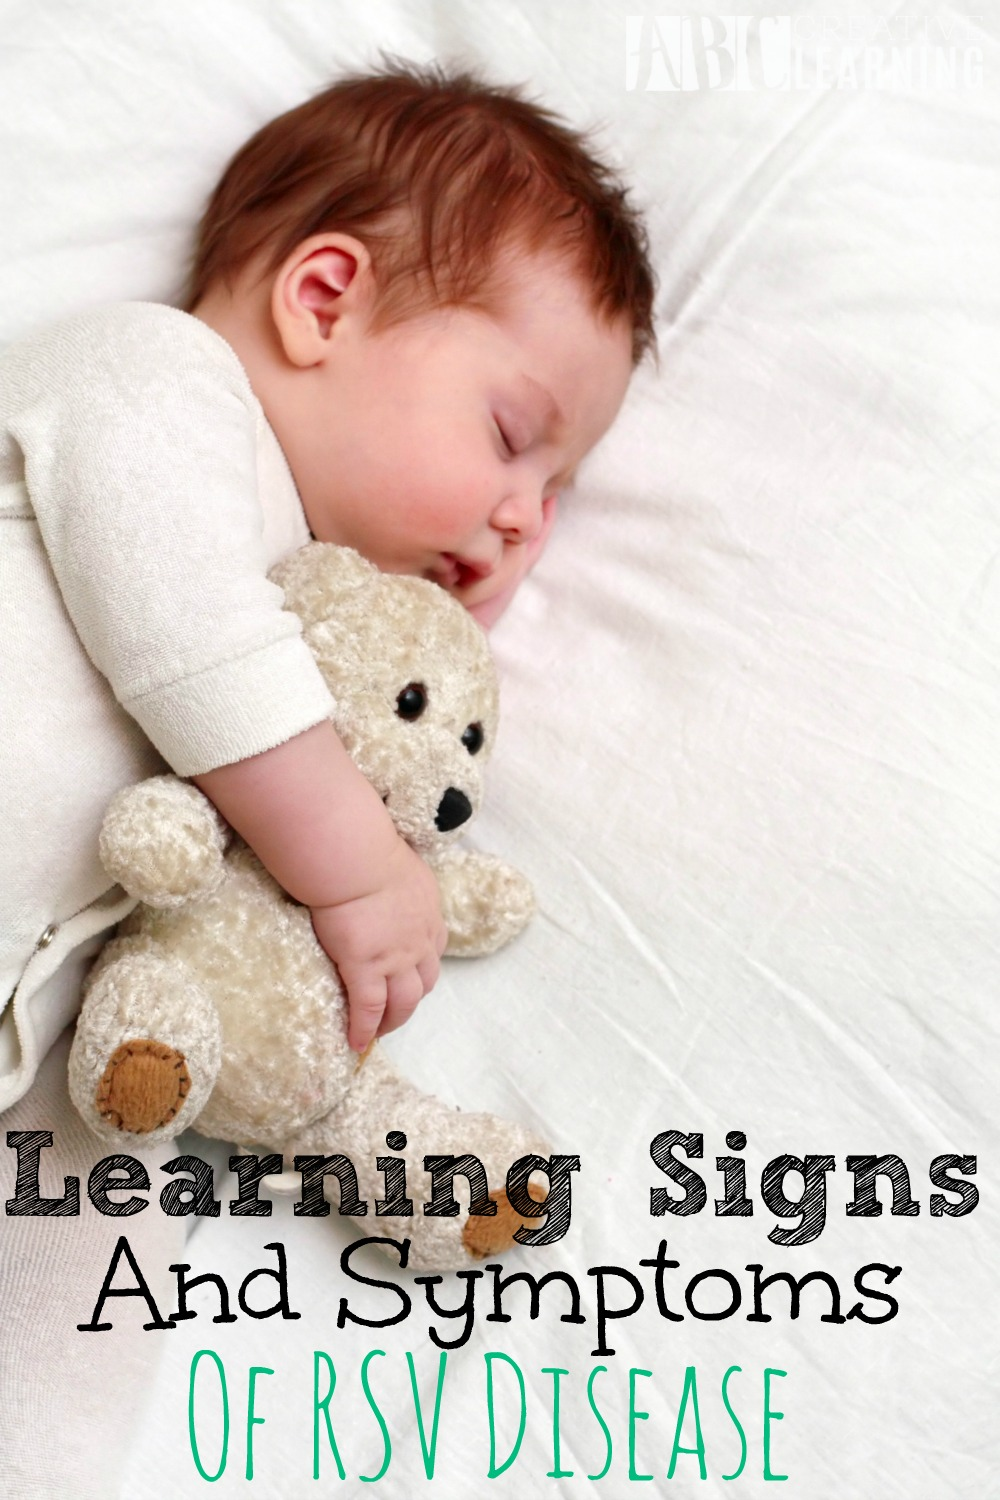 Learning Signs And Symptoms Of RSV Disease